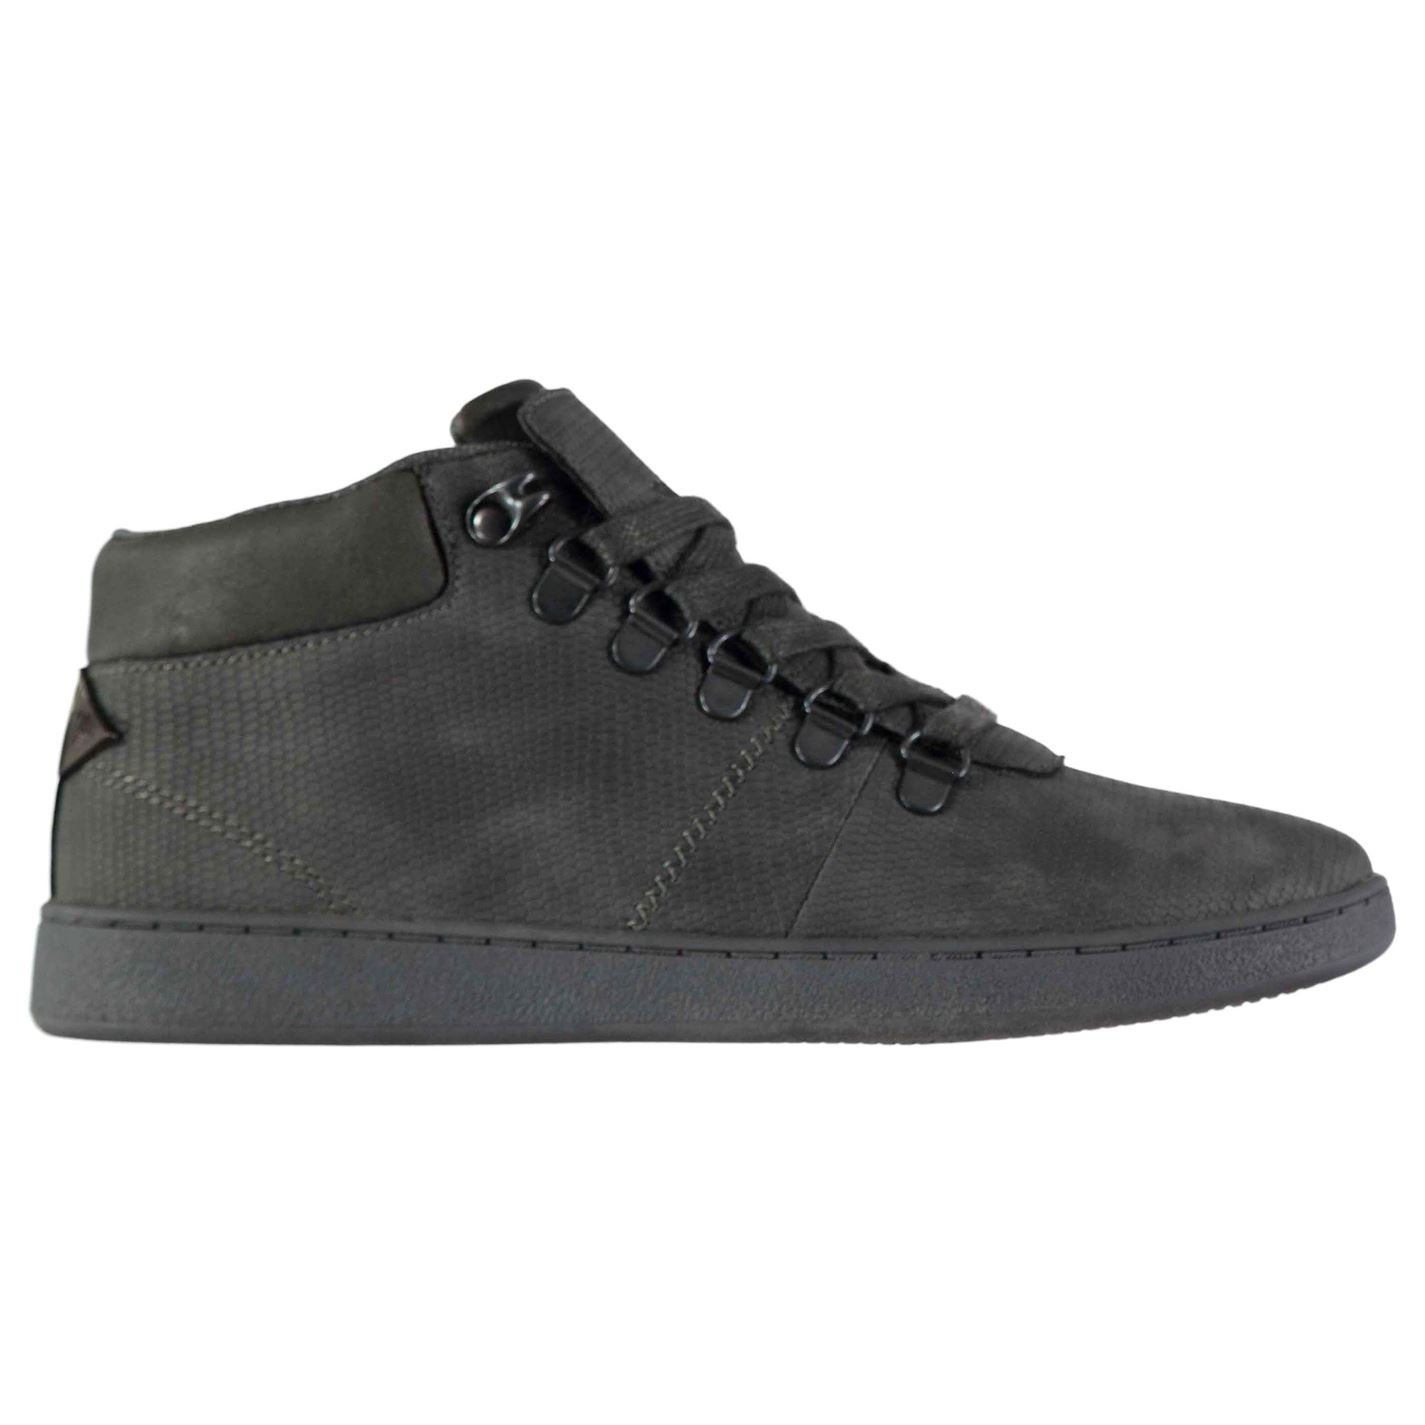 Soviet Kids Bosman Junior Trainers Chukka Boots Lace Up Suede Black UK 5 (38)